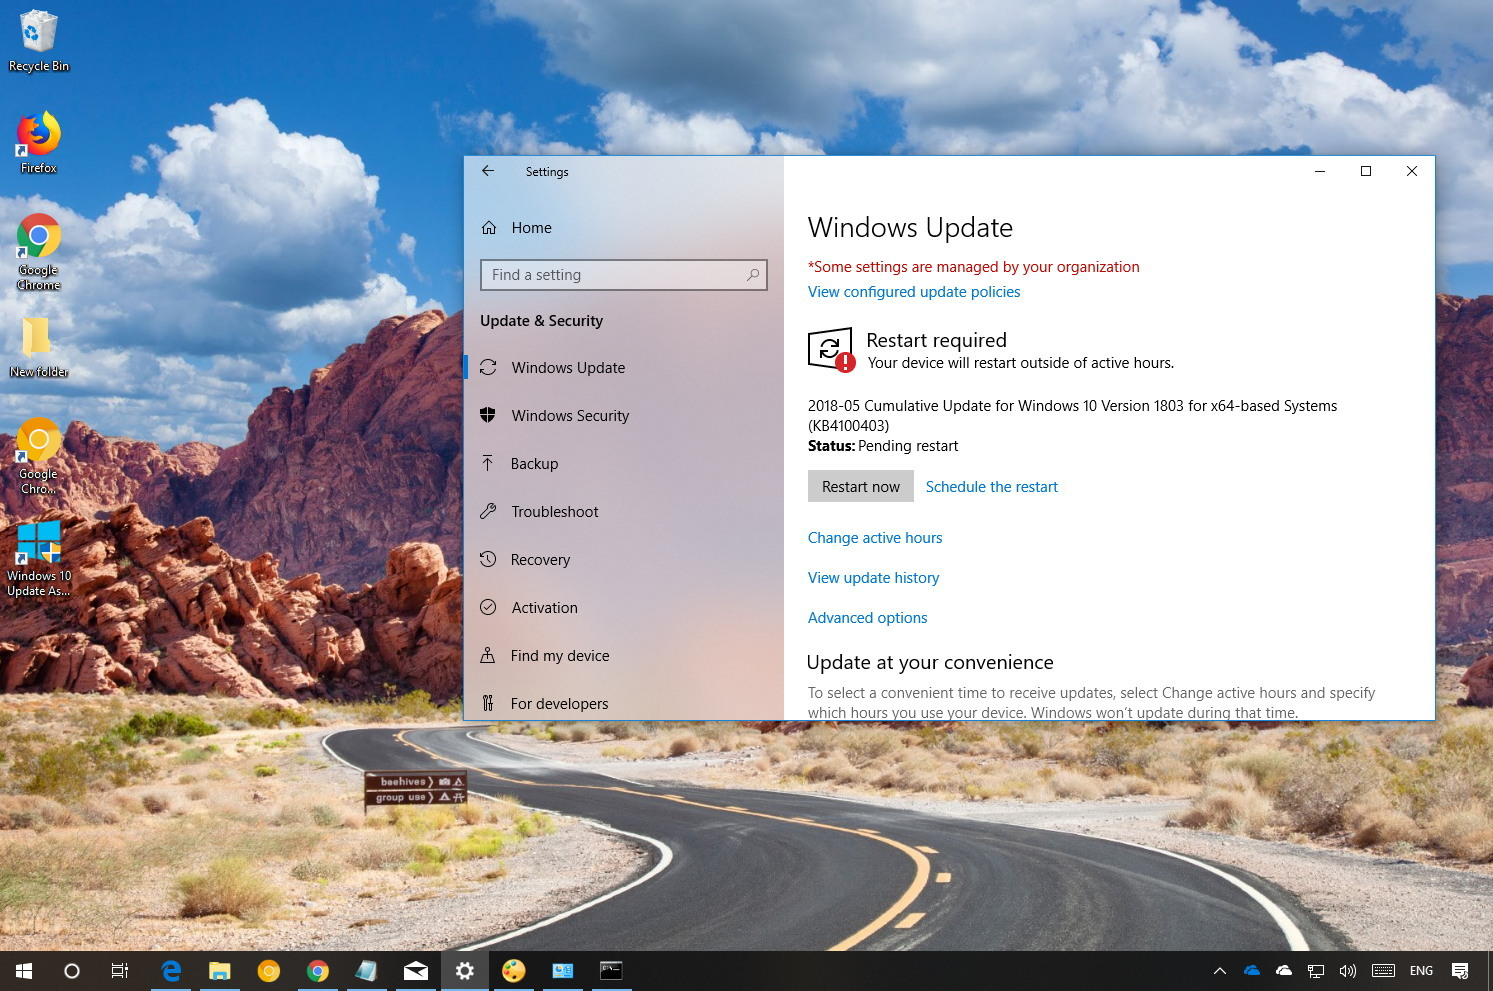 Windows 10 KB4100403